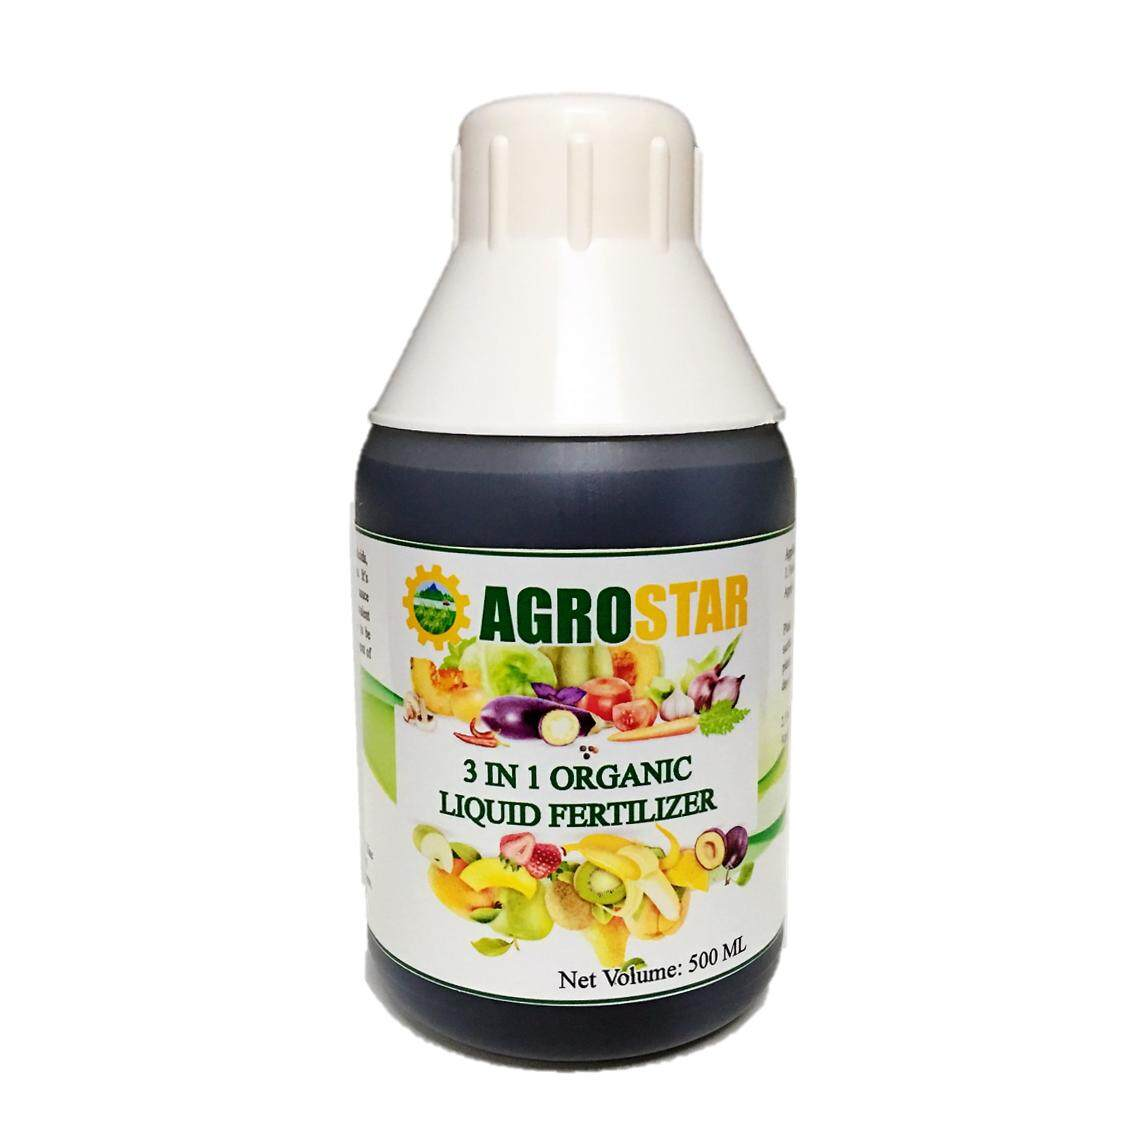 AGROSTAR - 3 in 1 Organic Liquid Fertilizer (Amino Acids, Fulvic Acids,  Chelated micronutrients) suitable for all plants 500ML